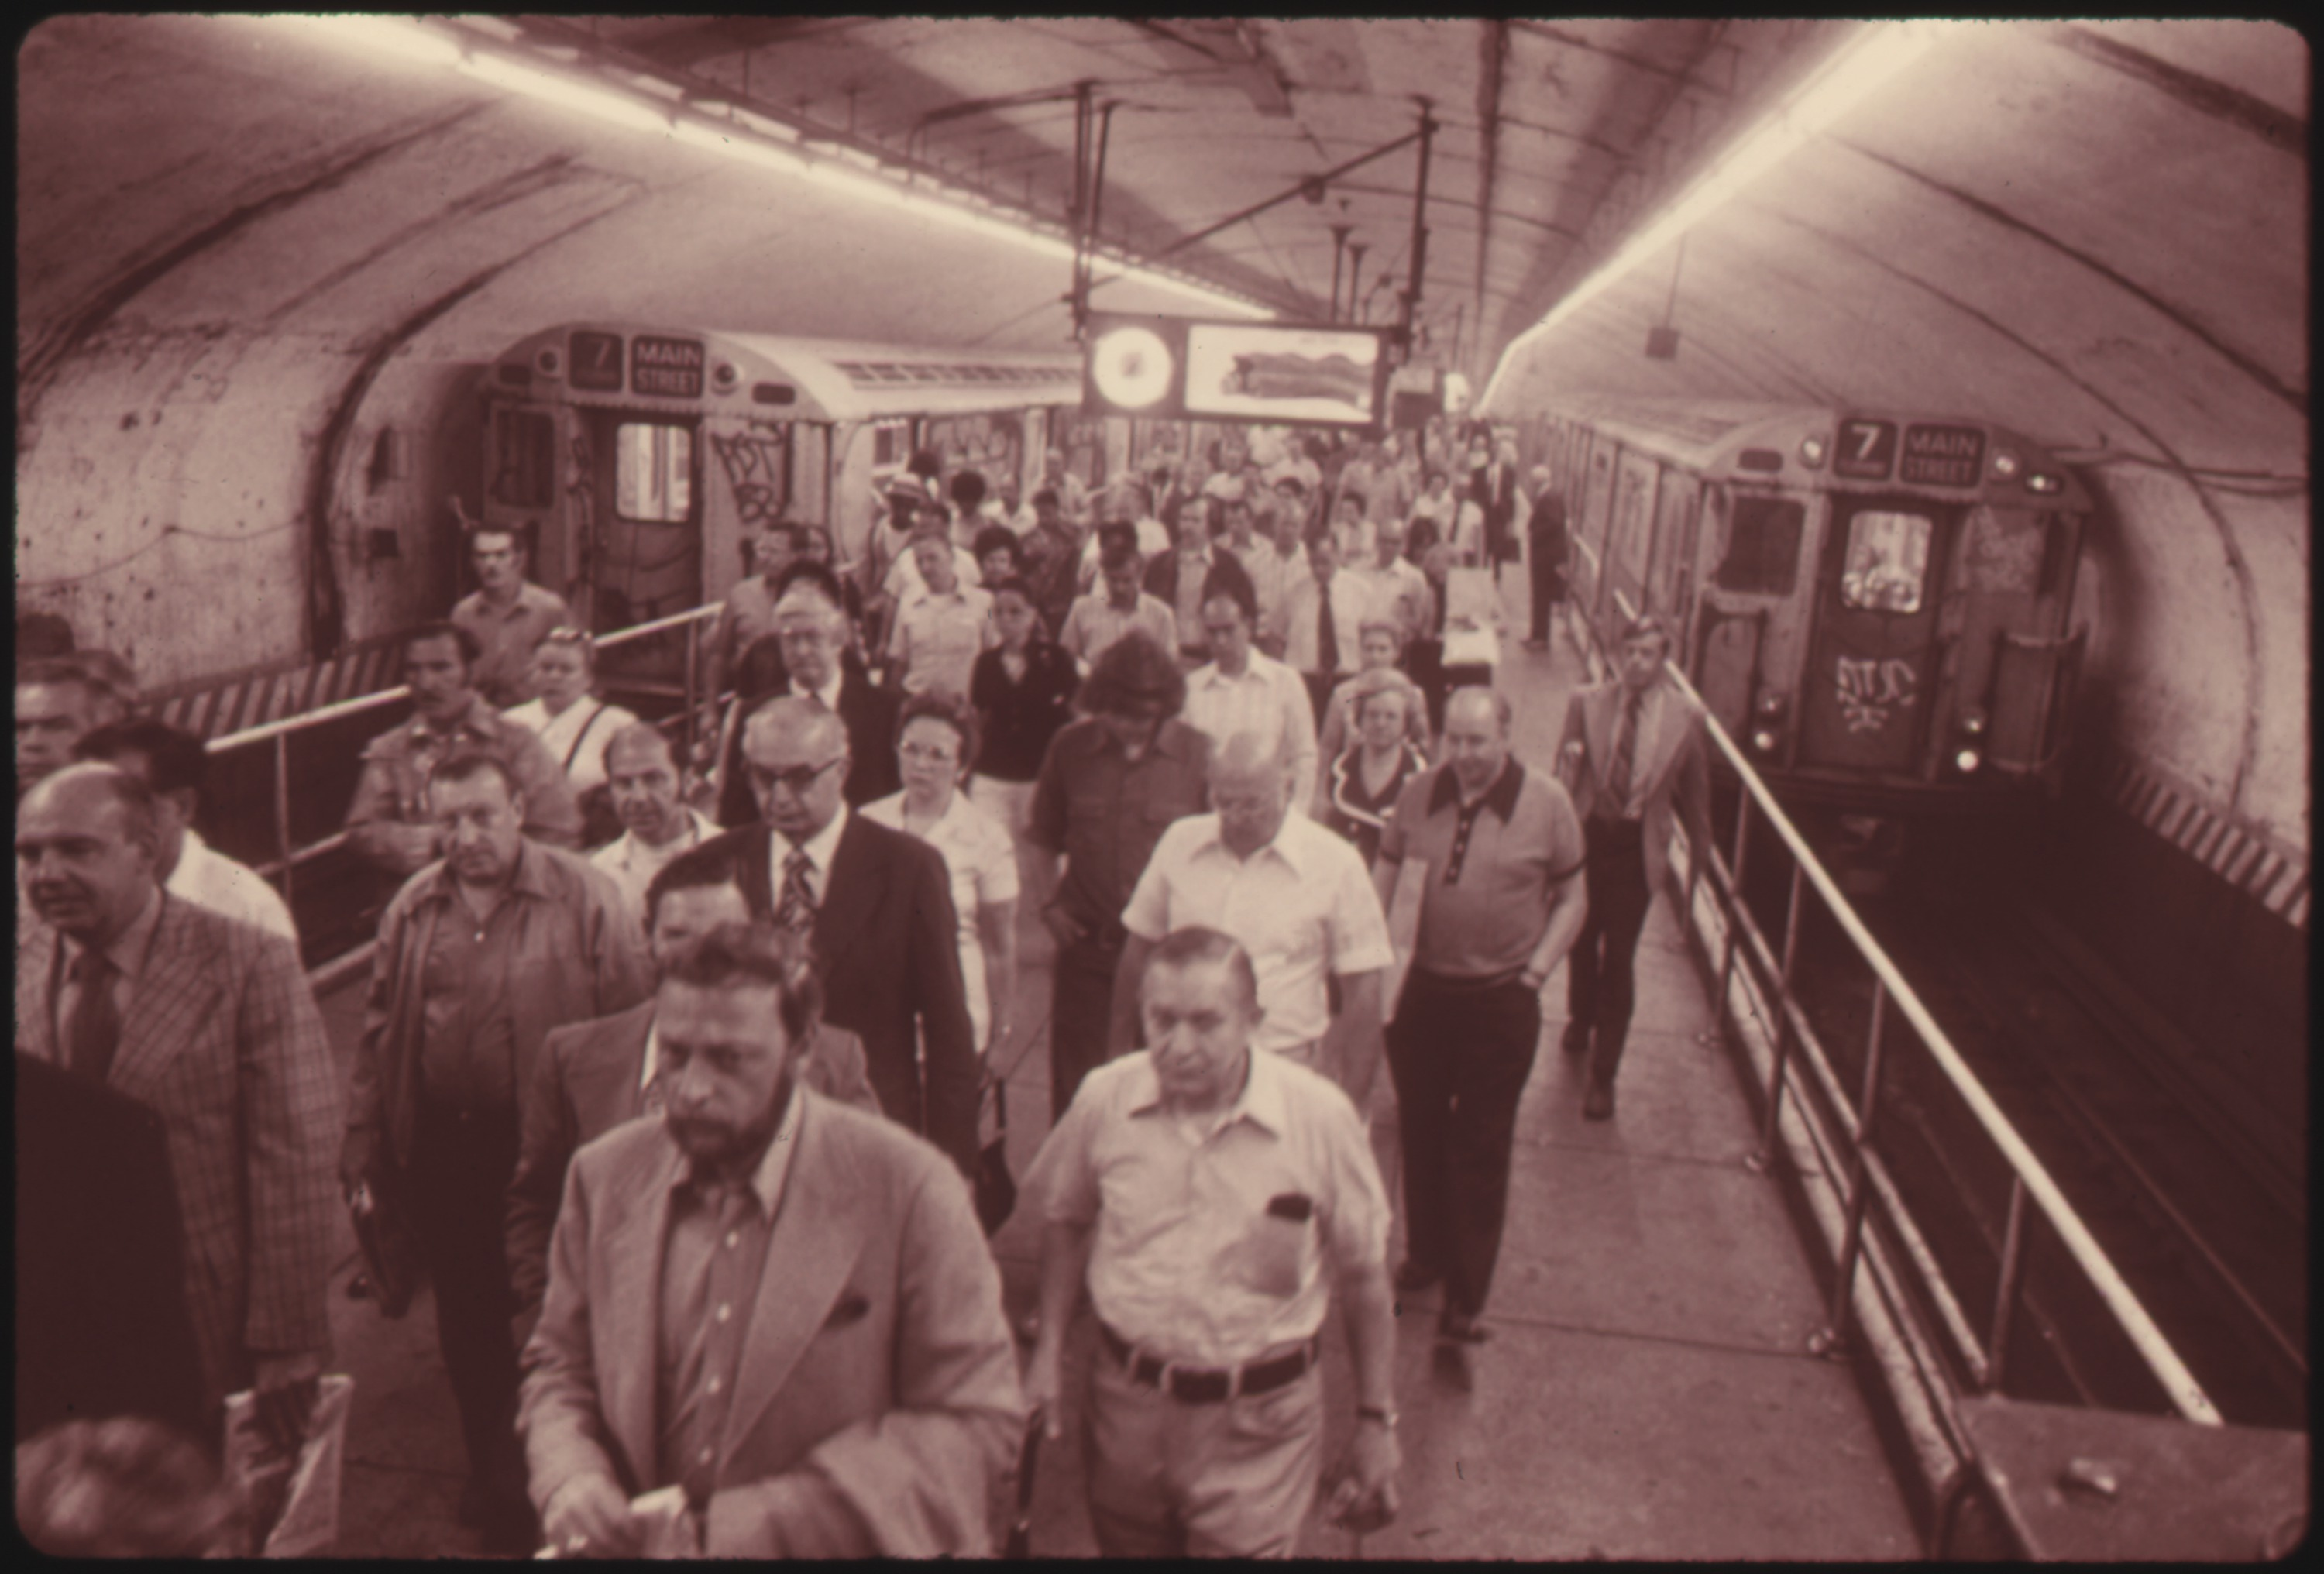 MORNING RUSH HOUR PASSENGERS GOING TO AND FROM SUBWAY TRAINS OPERATED BY THE NEW YORK CITY TRANSIT AUTHORITY. THE... - NARA - 556818